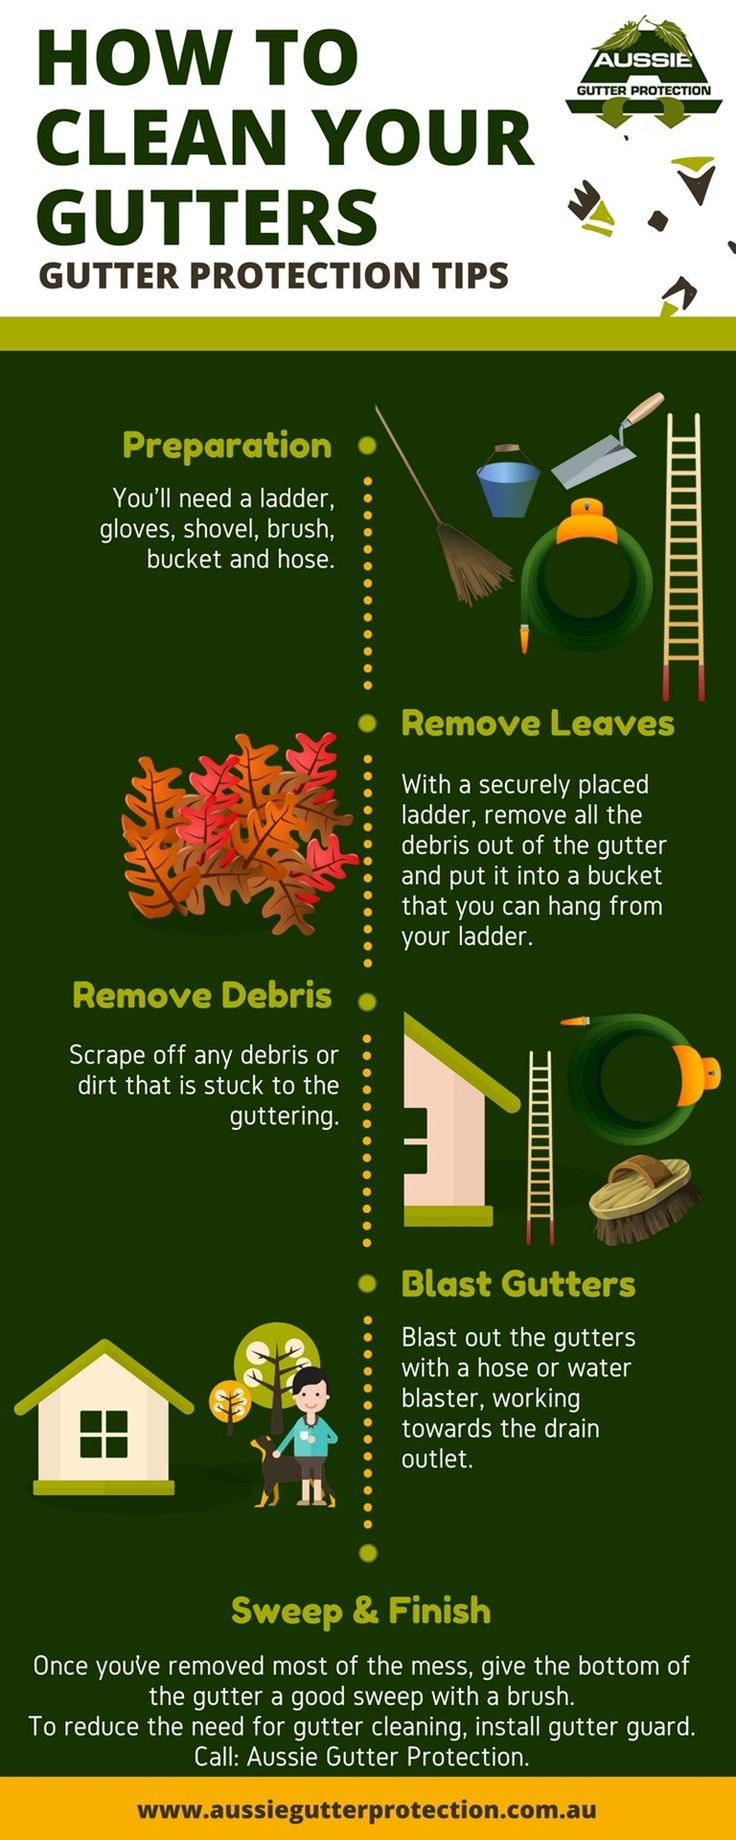 Infographic: How to Clean Your Gutters - Gutter Protection Tips #gutterguard #gutterprotection #guttercleaning